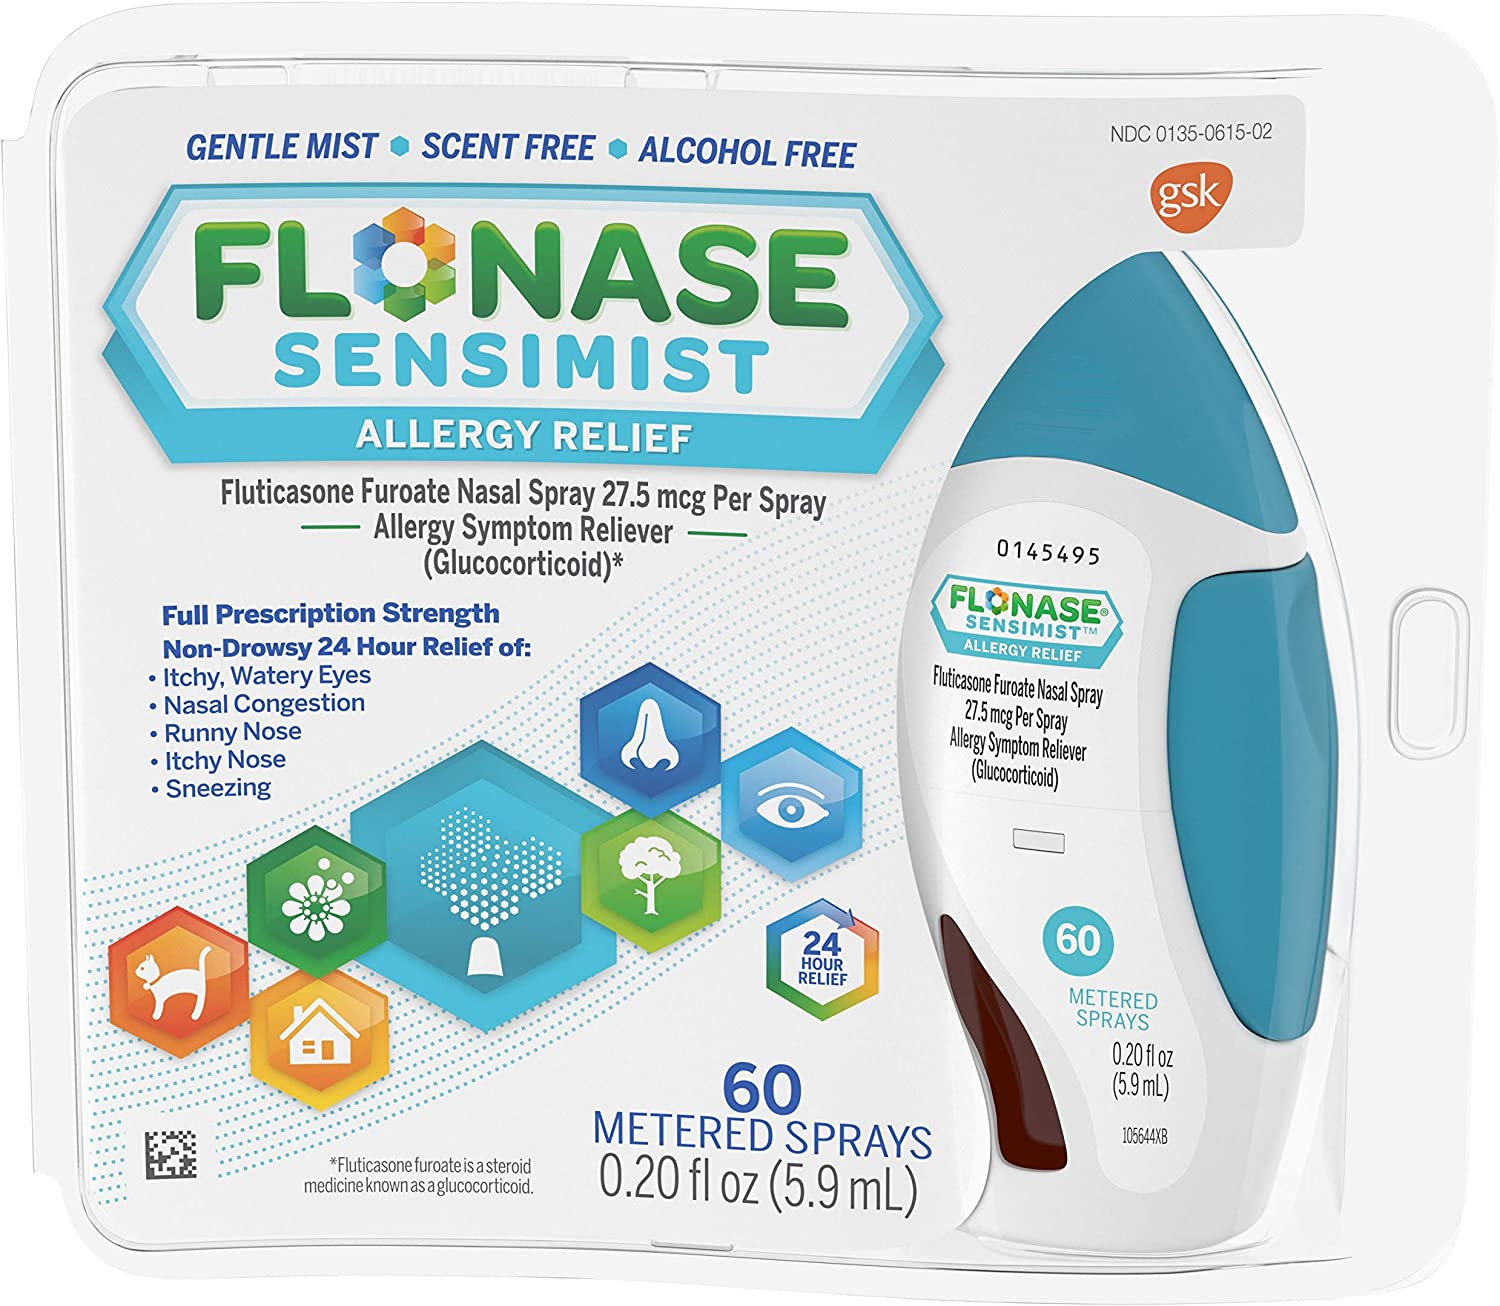 Flonase Sensimist Allergy Relief Nasal Spray, Allergy Medicine Scent-Free Alcohol-Free Gentle Mist 24 Hour Non-Drowsy, 60 sprays, 0.20 Fl Oz (Pack of 1)